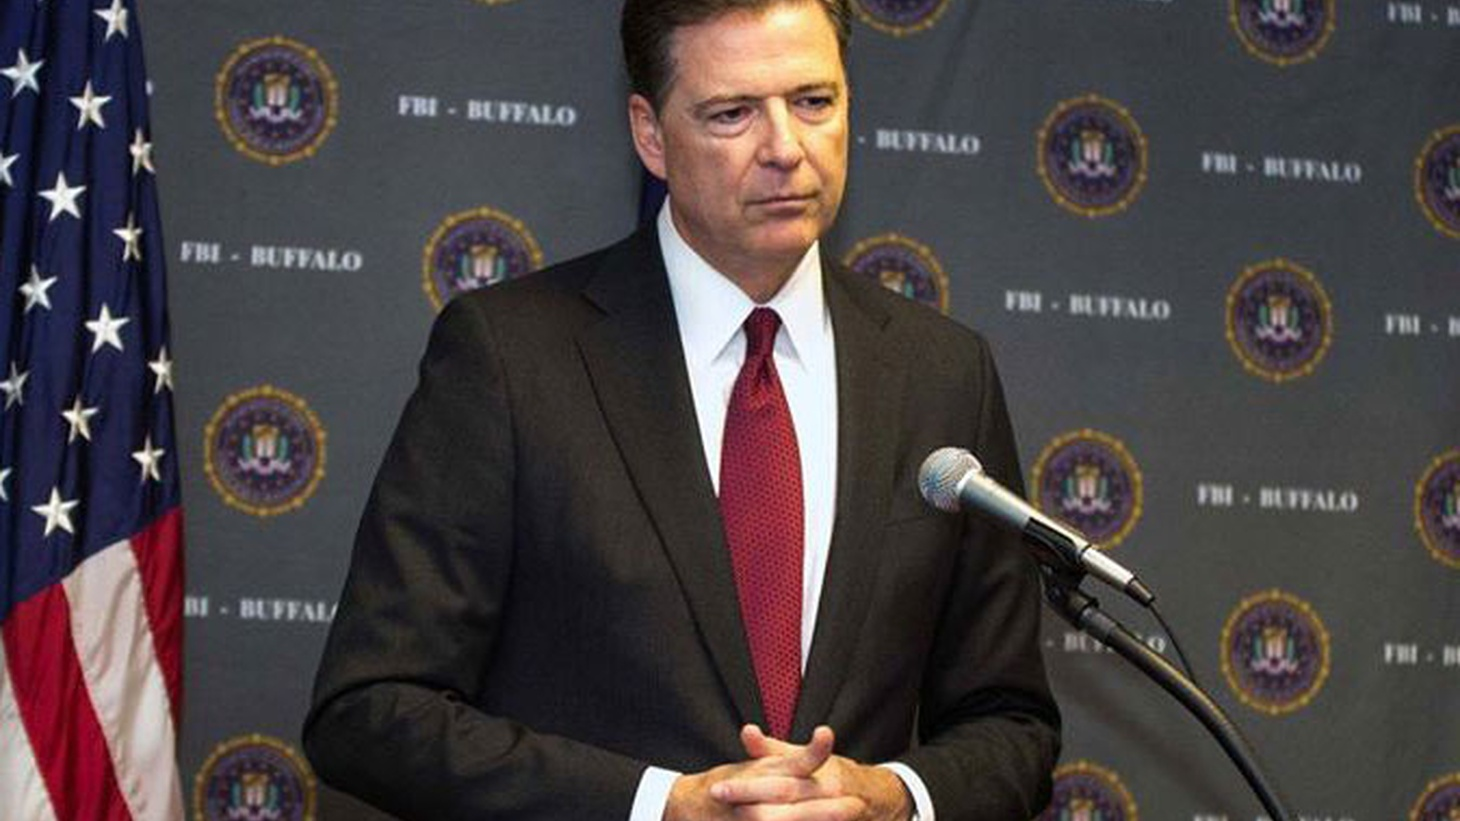 President Donald Trump is now contradicting his own letter to James Comey, and saying that he would have fired Comey regardless of the recommendation from his deputy attorney general. Also, how has all this news been affecting agents within the FBI?